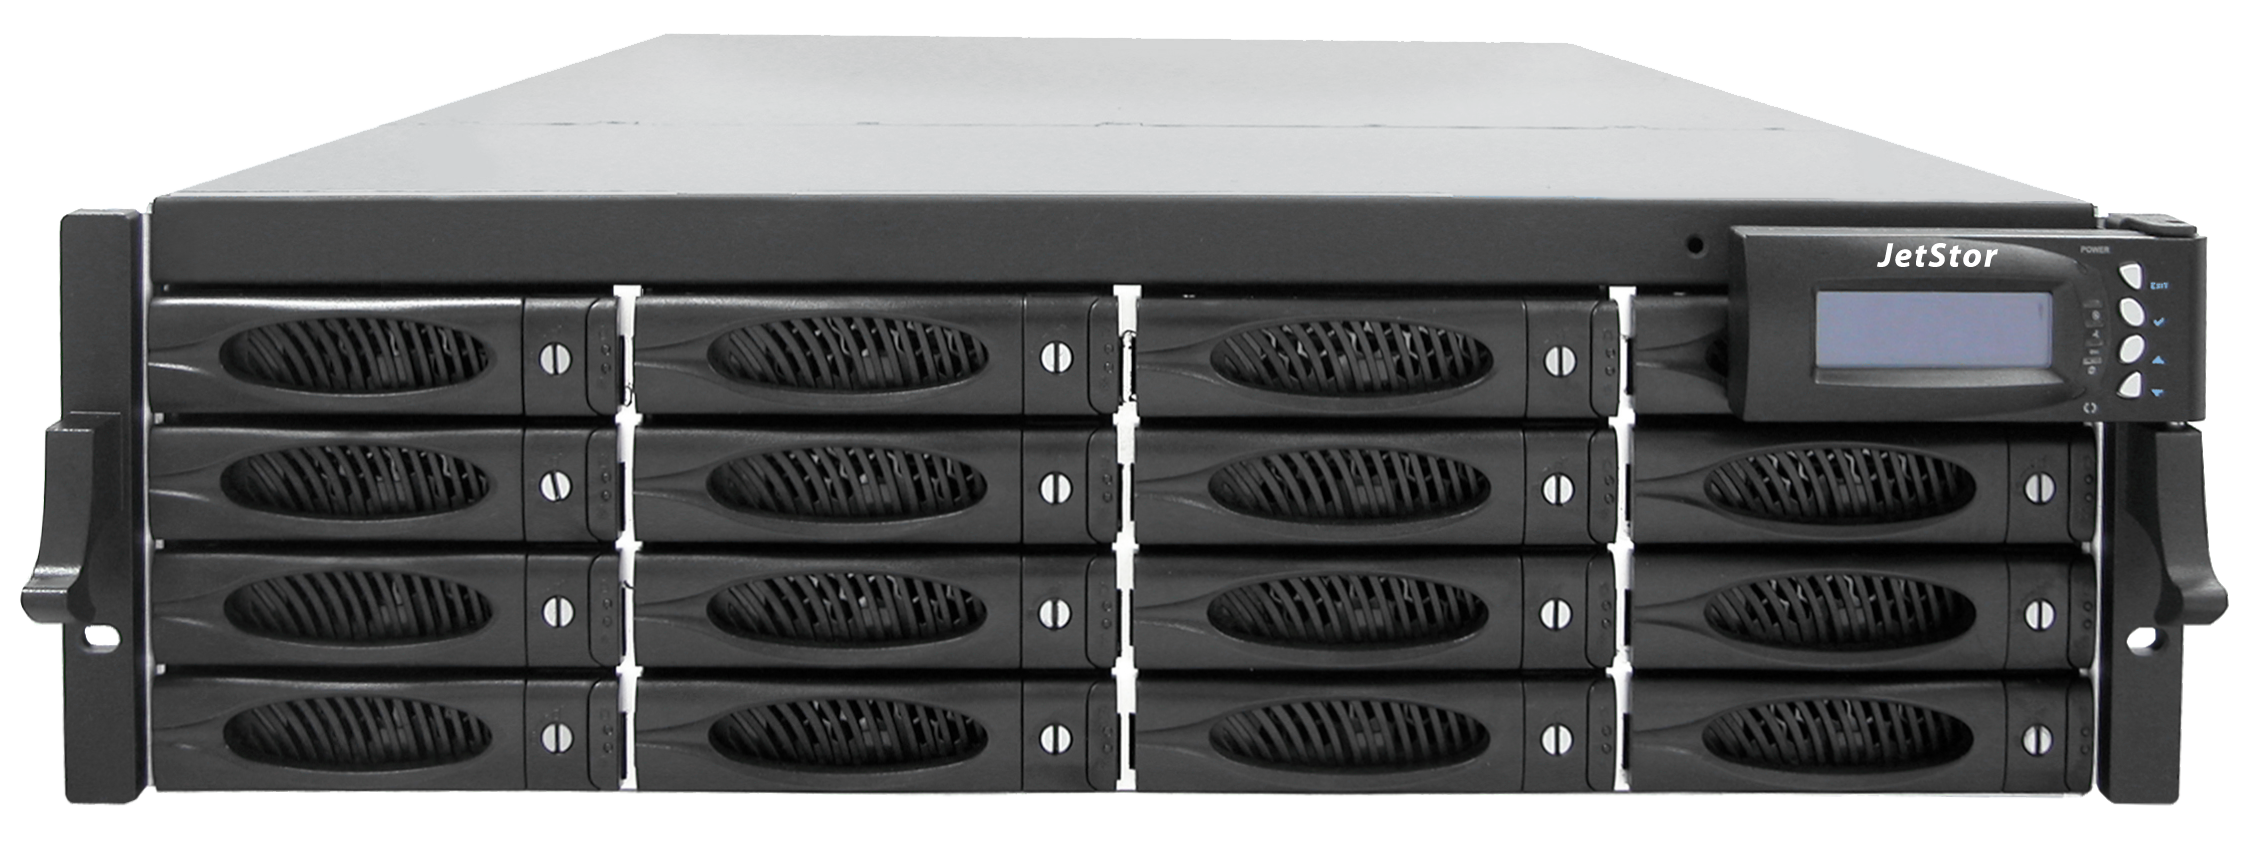 JETSTOR NAS 1600S UNIFIED STORAGE